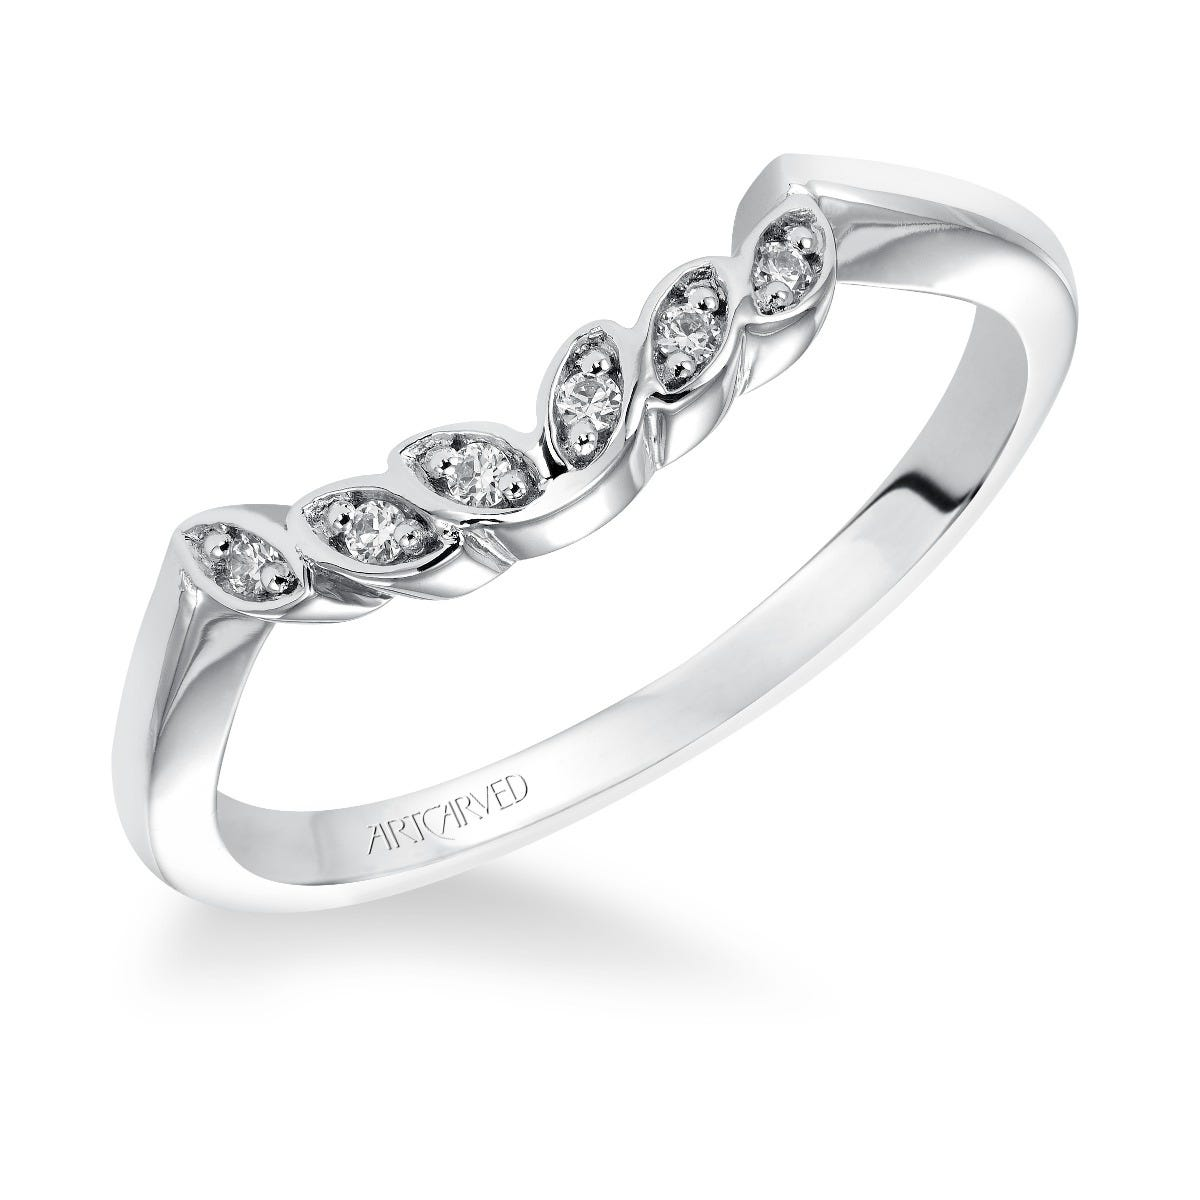 Corrine. ArtCarved® Diamond Floral Wedding Band in 14k White Gold